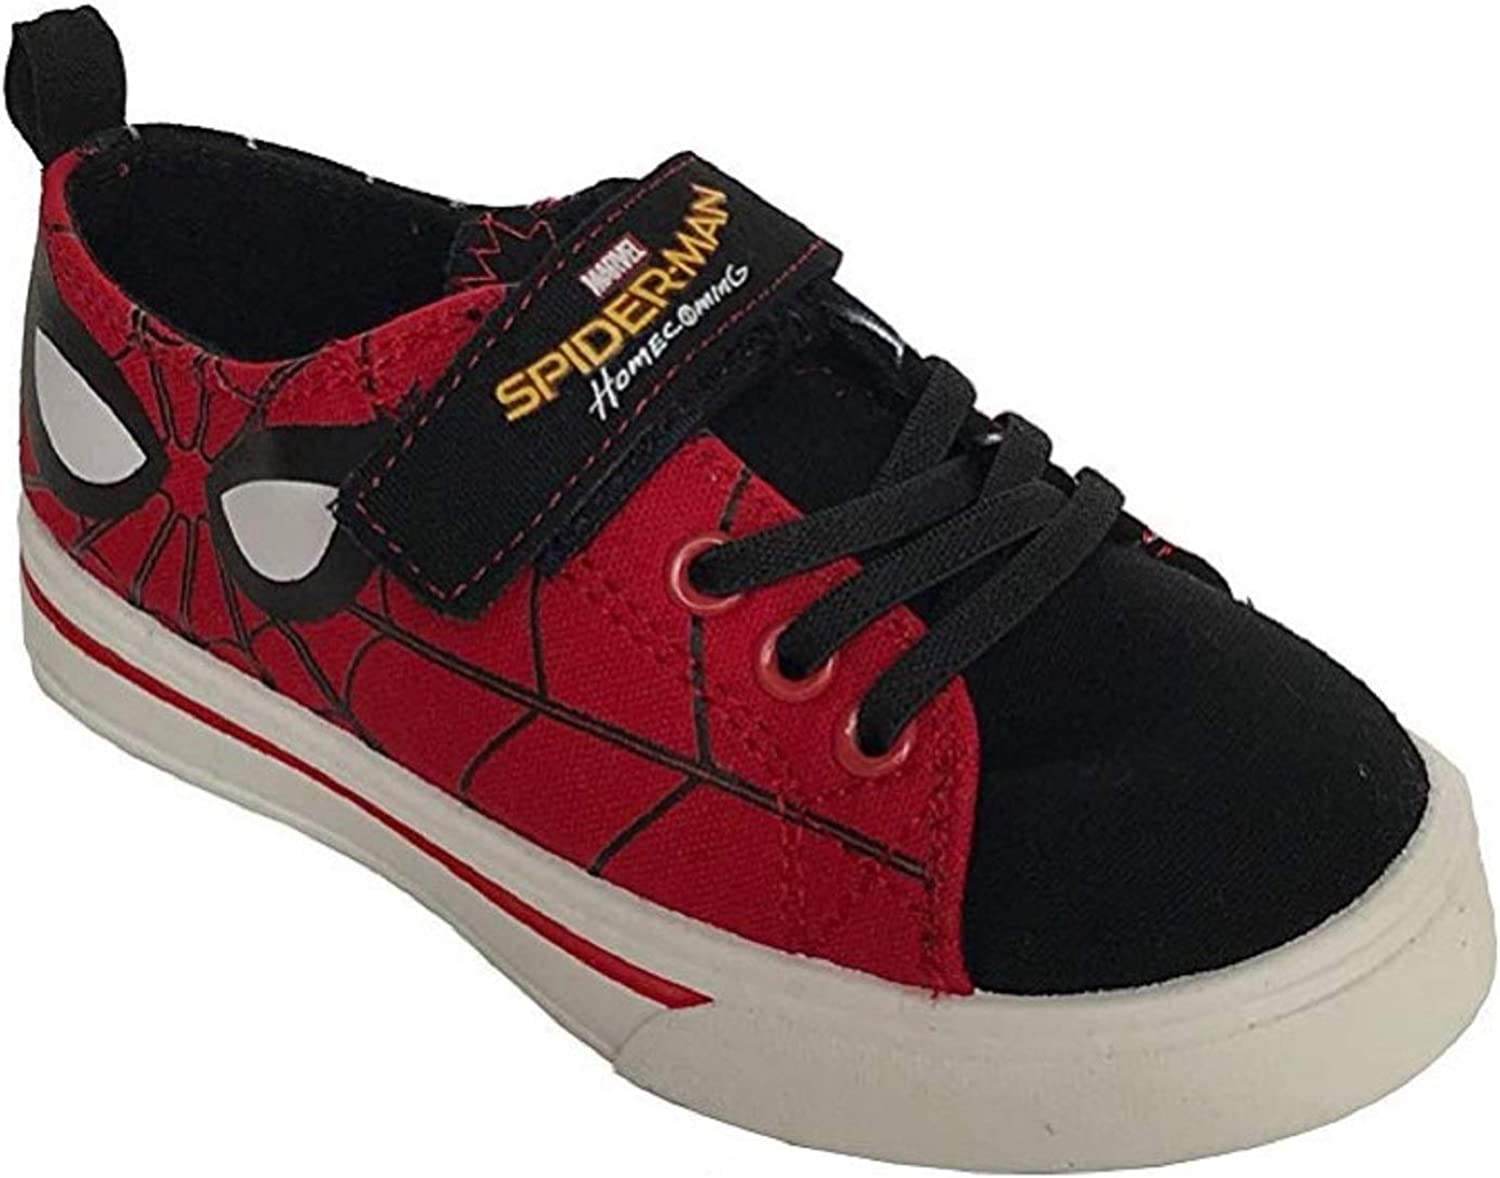 Marvel Spider-Man Homecoming Boys Casual Canvas Shoes Toddler Velcro Slip on Sneaker